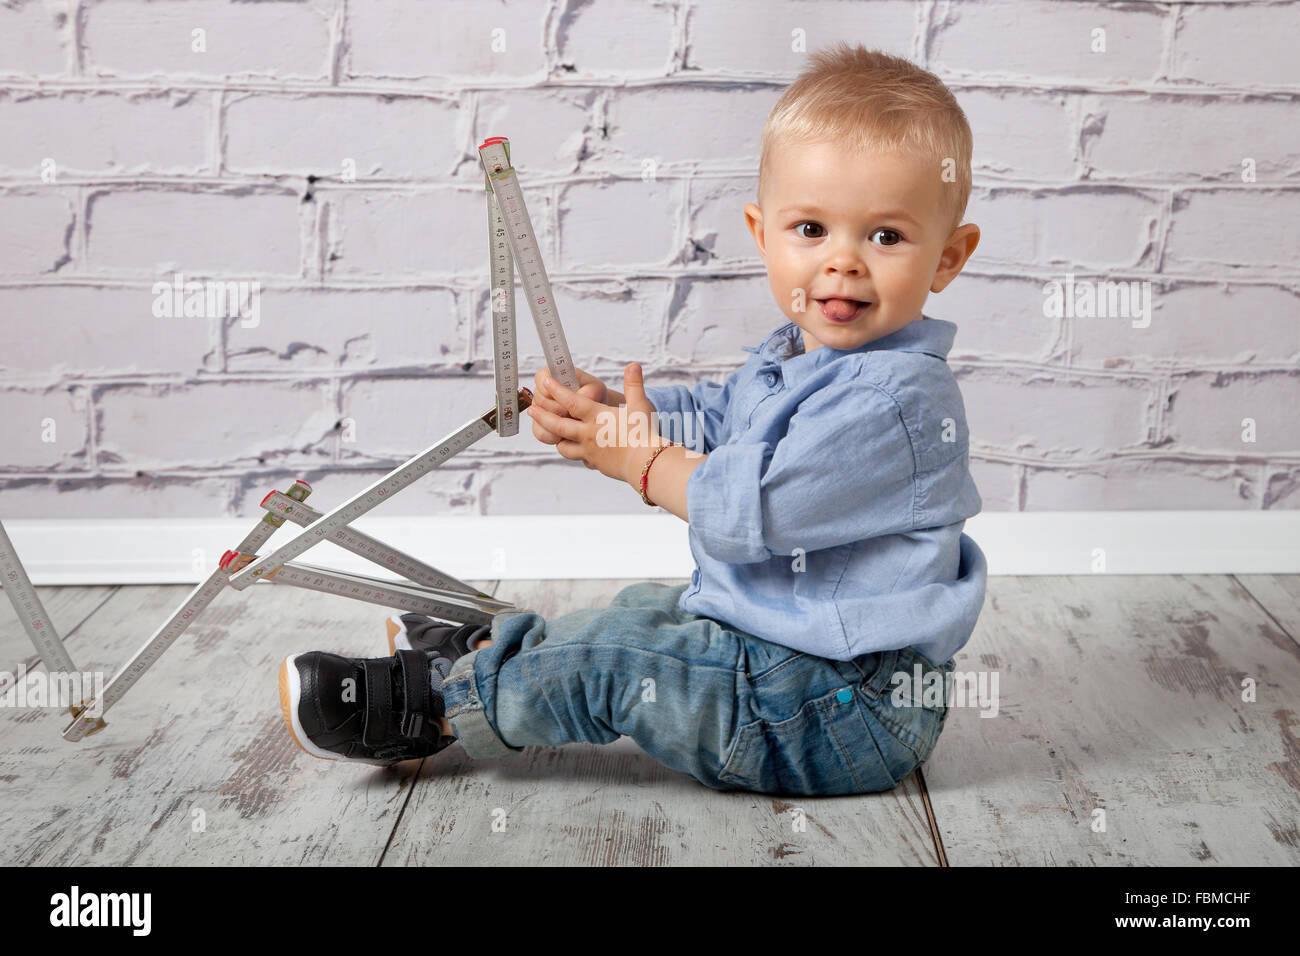 Child playing with wooden meter stick - Stock Image